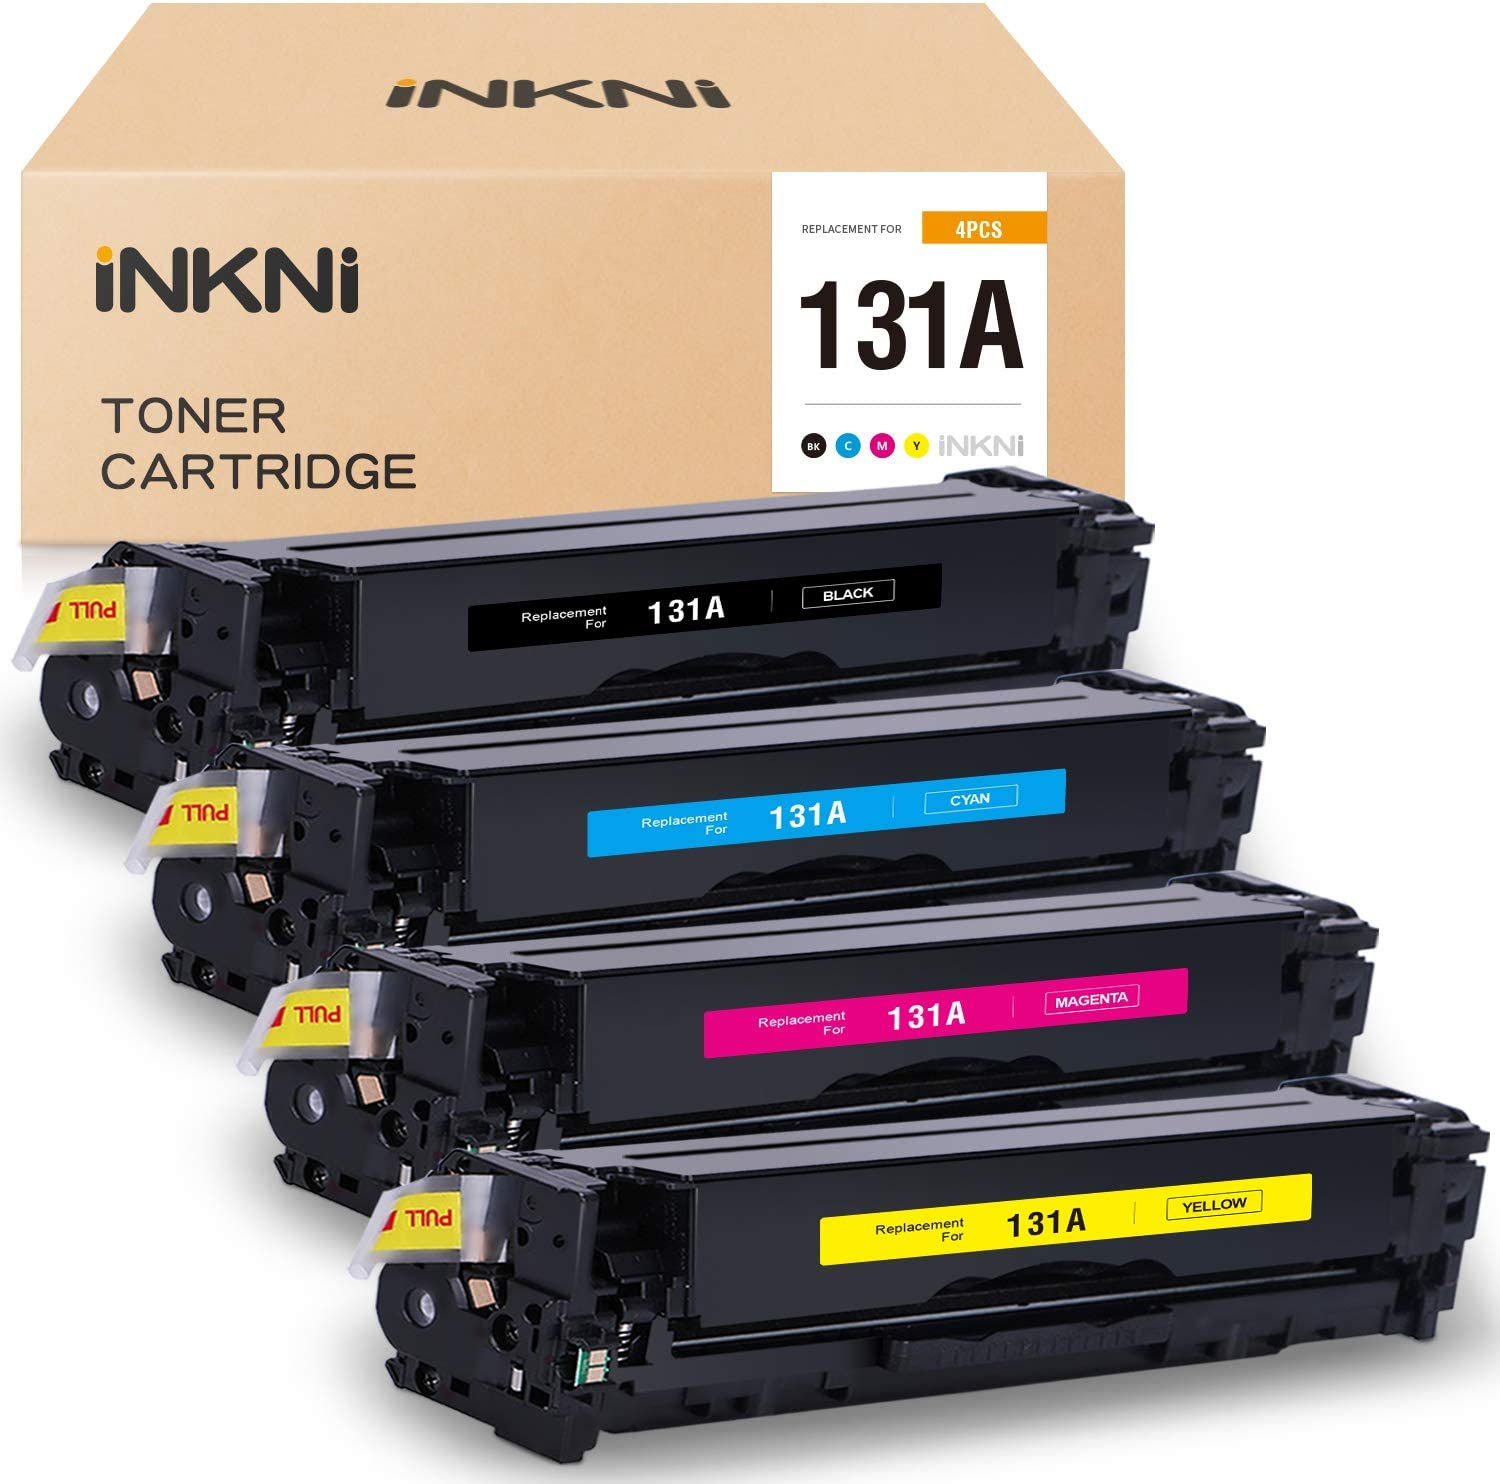 INKNI Remanufactured Toner Cartridge Replacement for HP 131A CF210A 131X CF210X CF211A CF212A CF213A for Laserjet Pro 200 Color M251n M251nw MFP M276n M276nw (Black Cyan Yellow Magenta, 4-Pack)